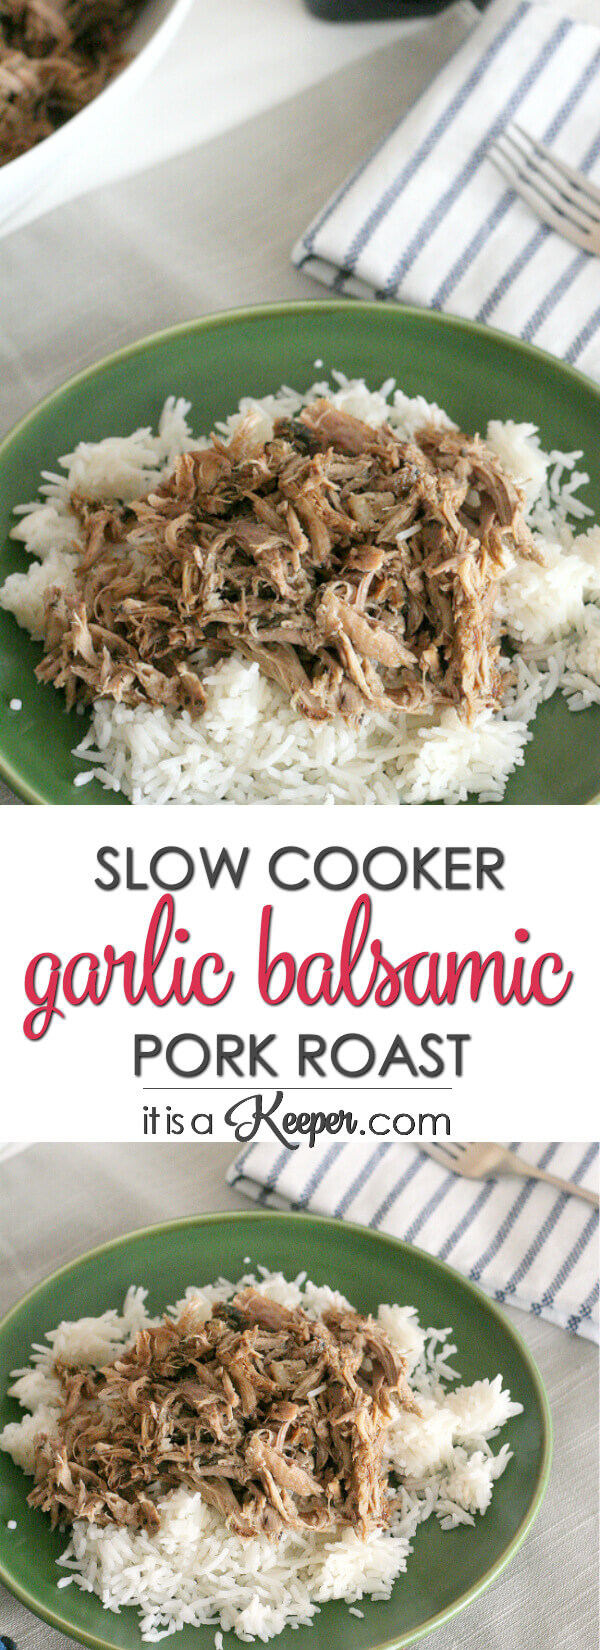 This Slow Cooker Garlic Balsamic Pork Roast is an easy crock pot recipe that is loaded with flavor. It is a delicious slow cooker pork recipe.